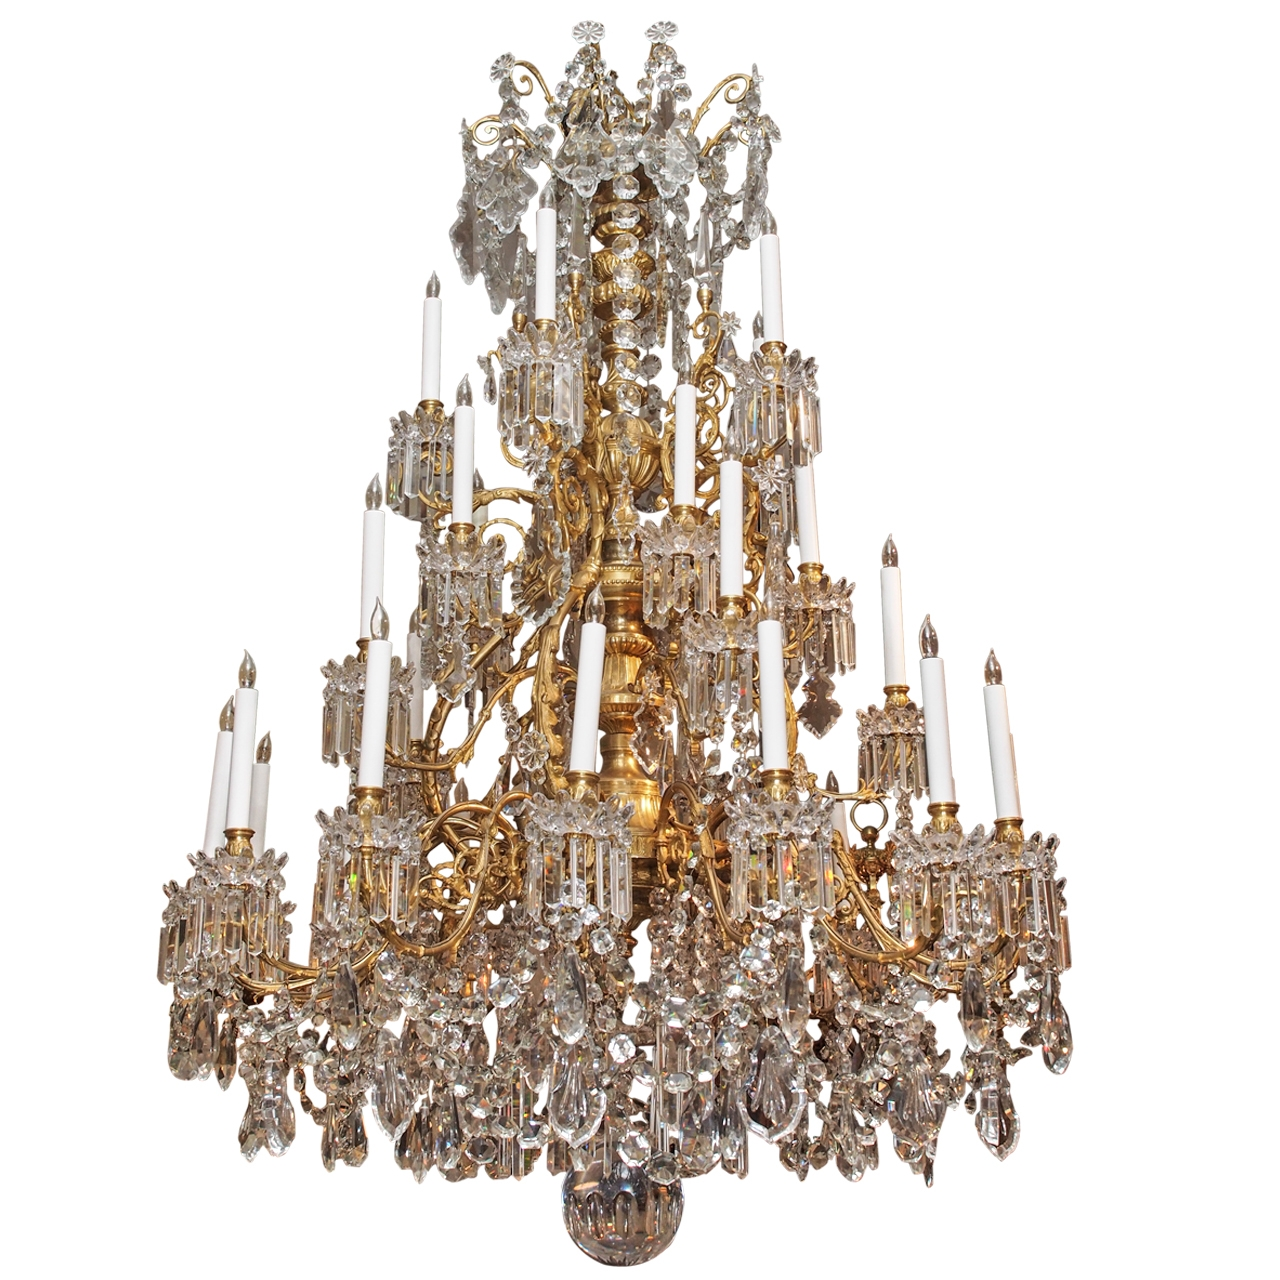 Magnificent Antique French Baccarat Crystal Chandelier Circa 1850 For Chandeliers Vintage (Image 10 of 15)